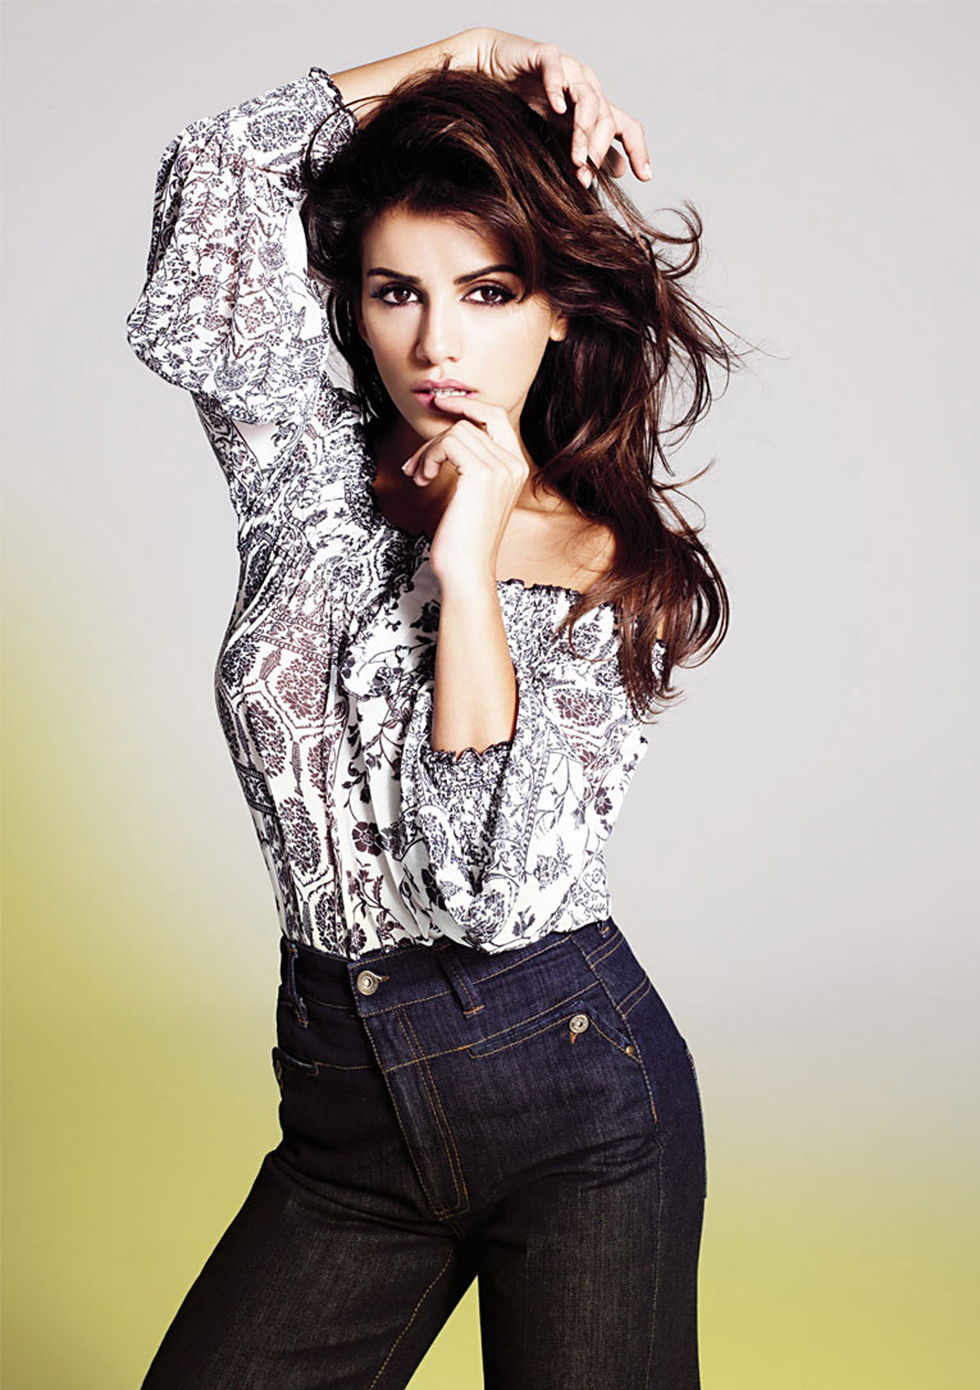 penelope-and-monica-cruz-photoshoot-for-mango-clothes-01